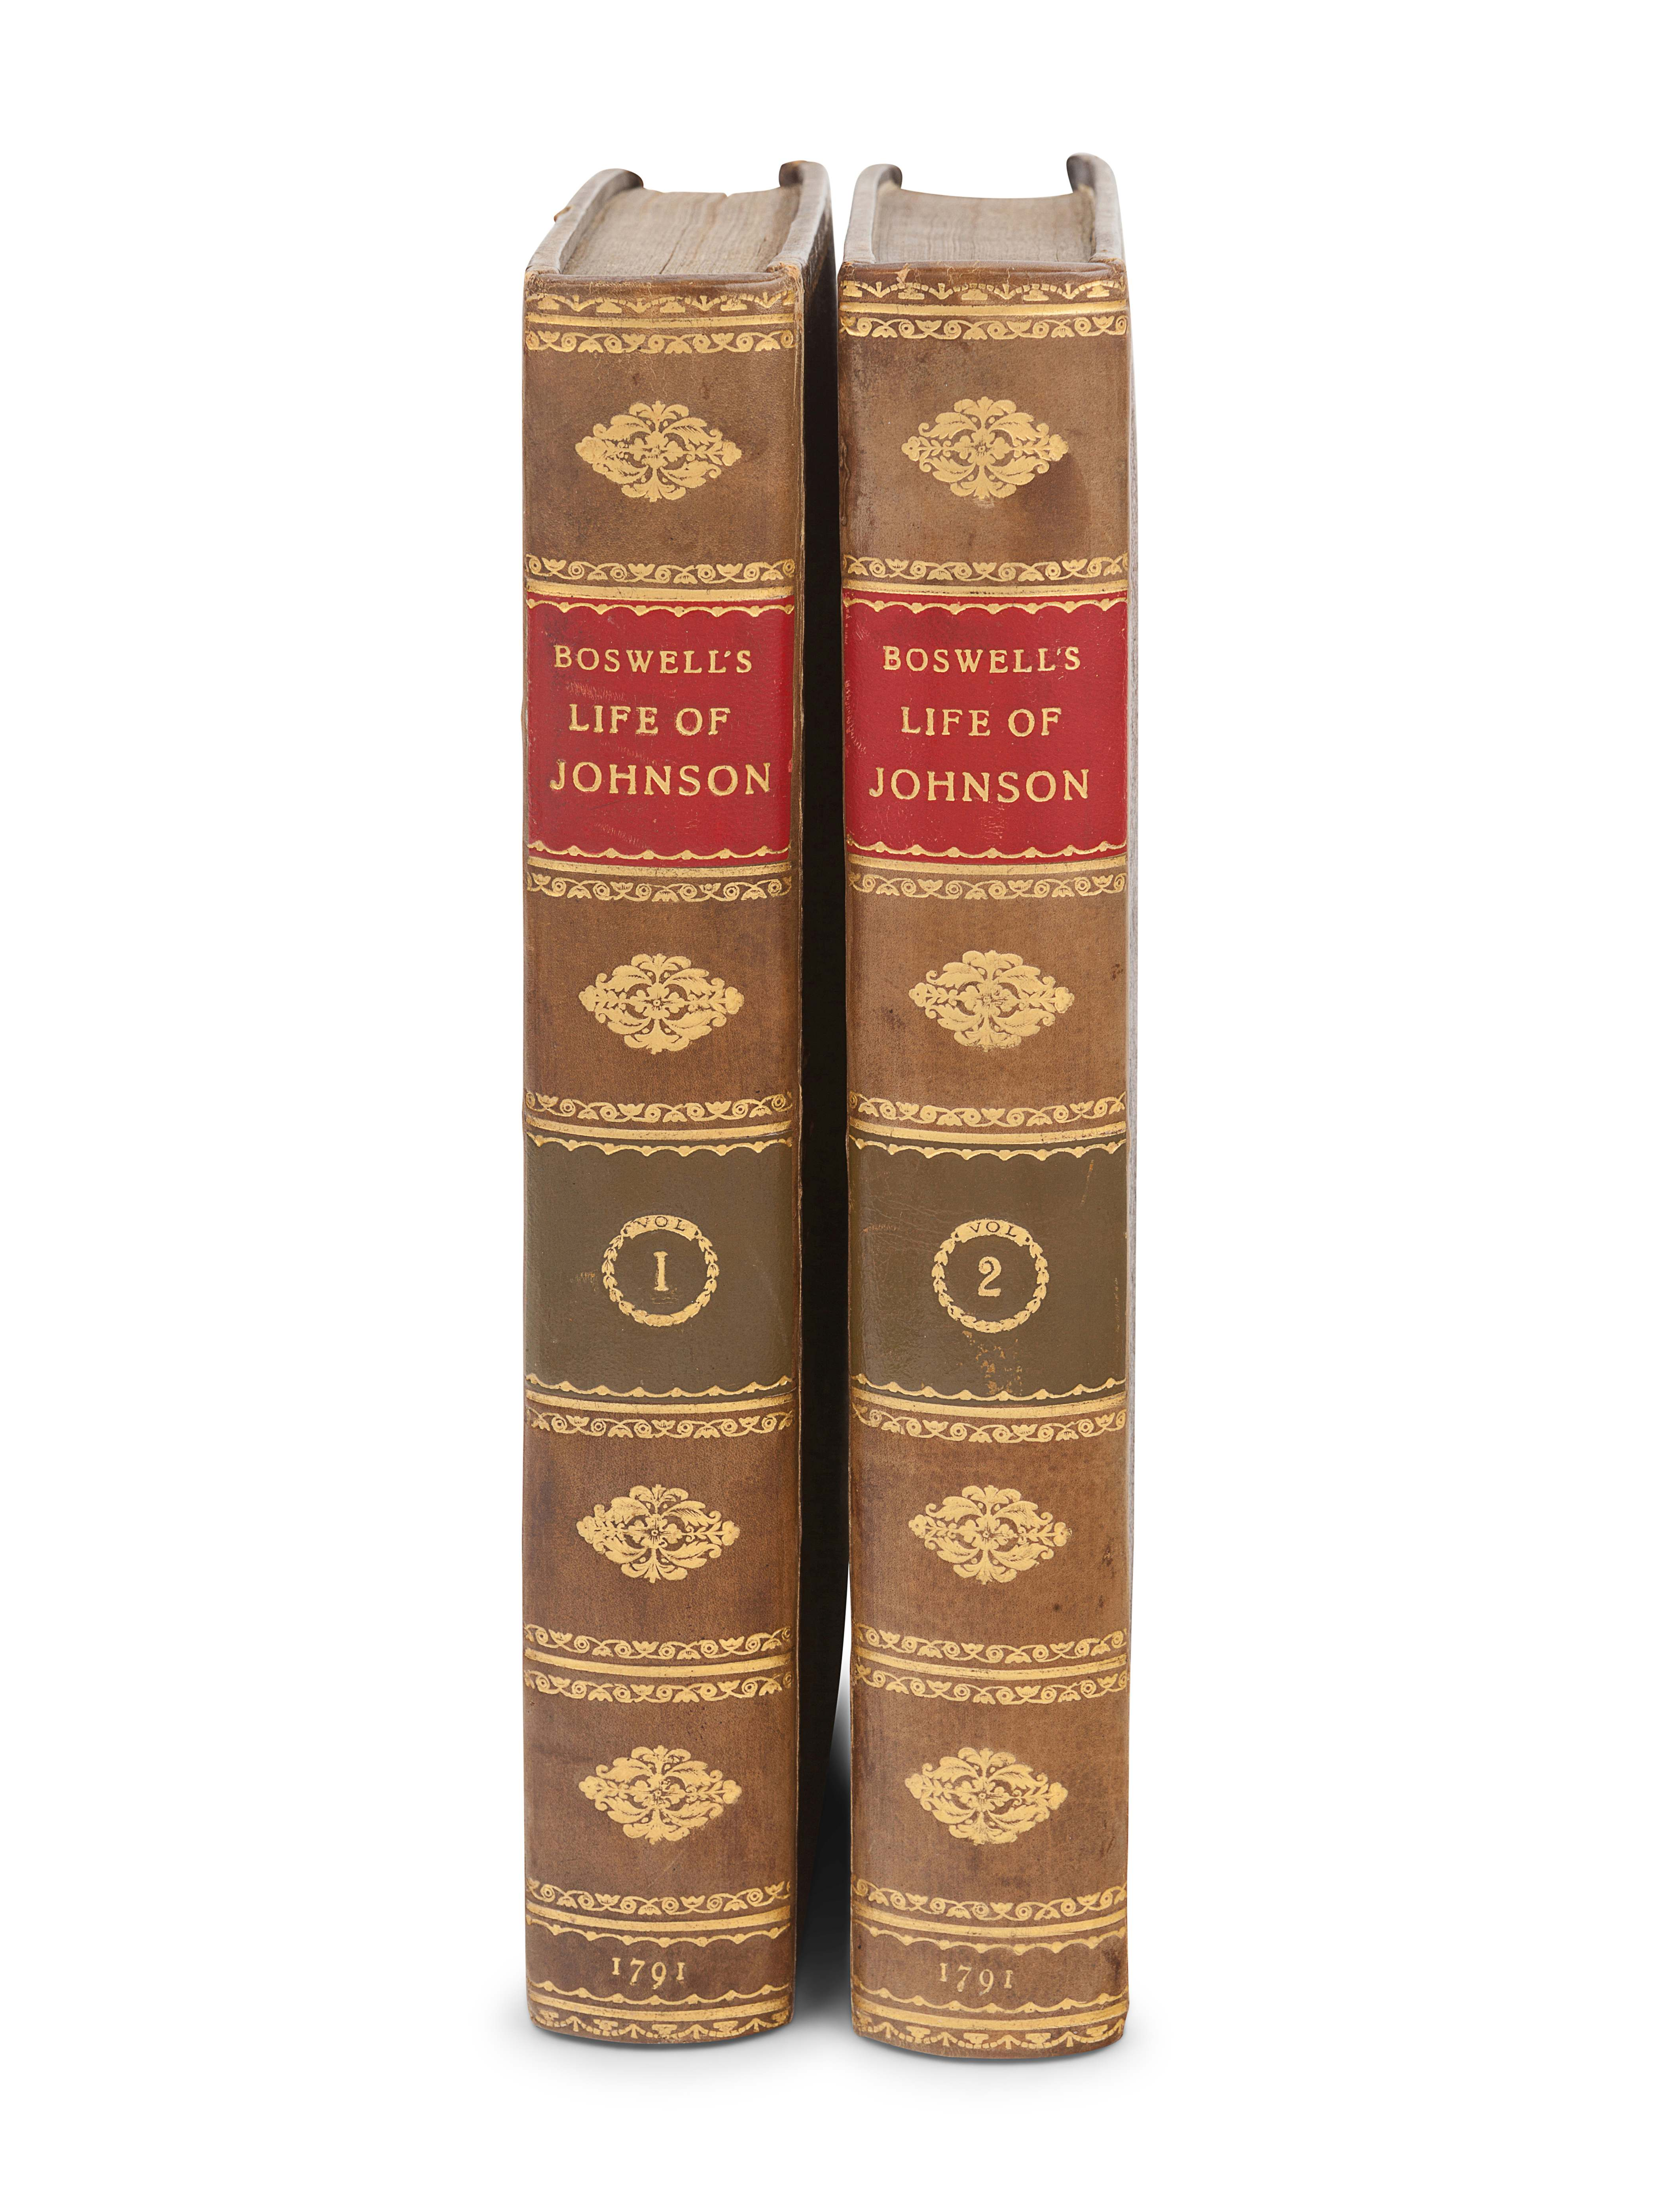 BOSWELL, James (1740-1795). The Life of Samuel Johnson. London: Henry Baldwin for Charles Dilly, 179 - Image 2 of 2